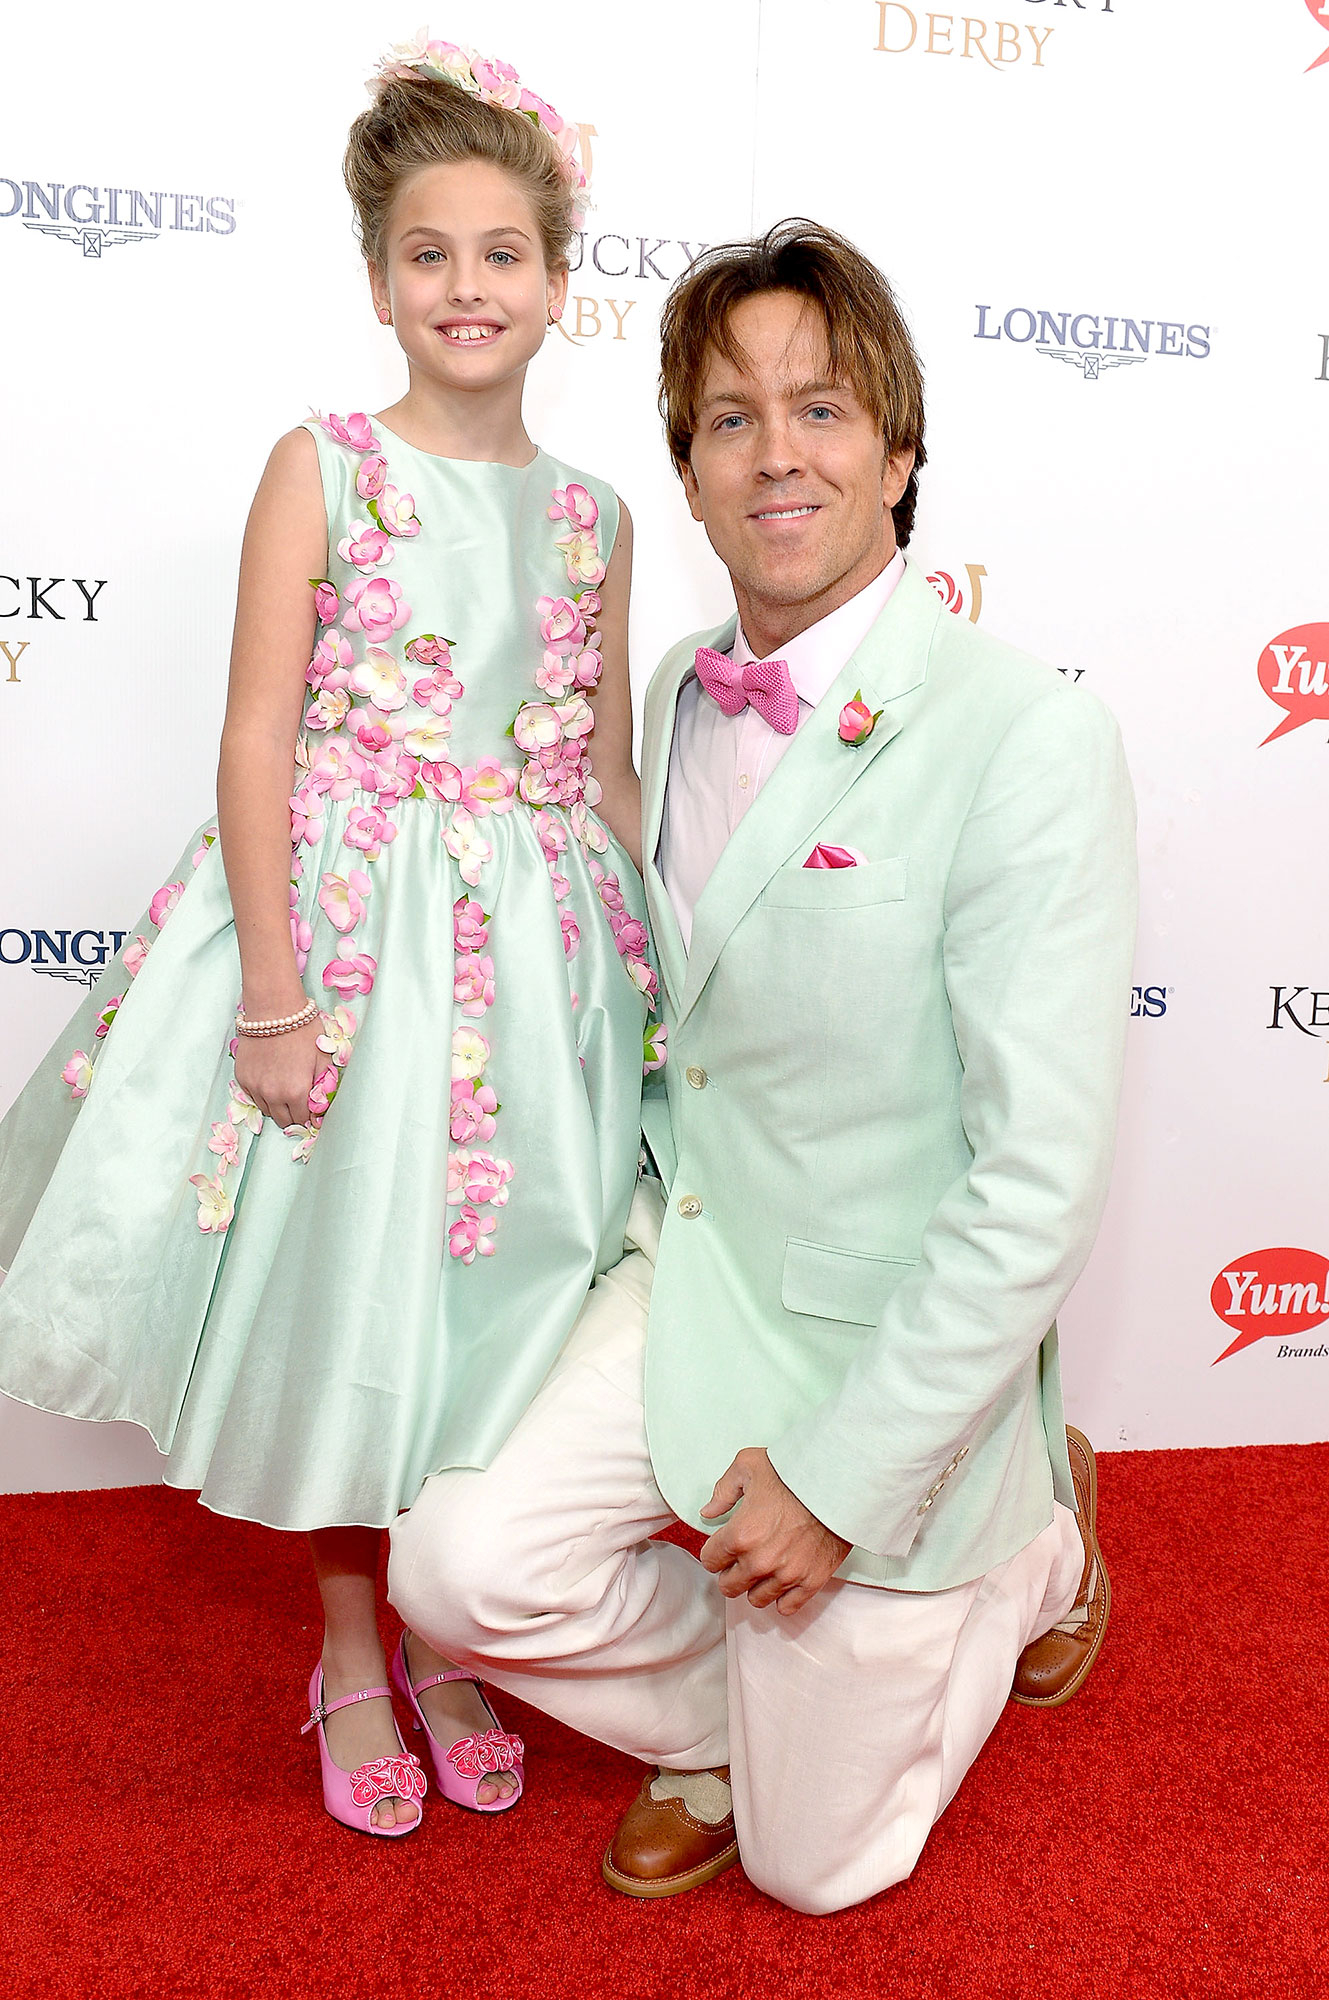 Dannielynn Birkhead (L) and former model Larry Birkhead attend the 142nd Kentucky Derby at Churchill Downs on May 07, 2016 in Louisville, Kentucky.